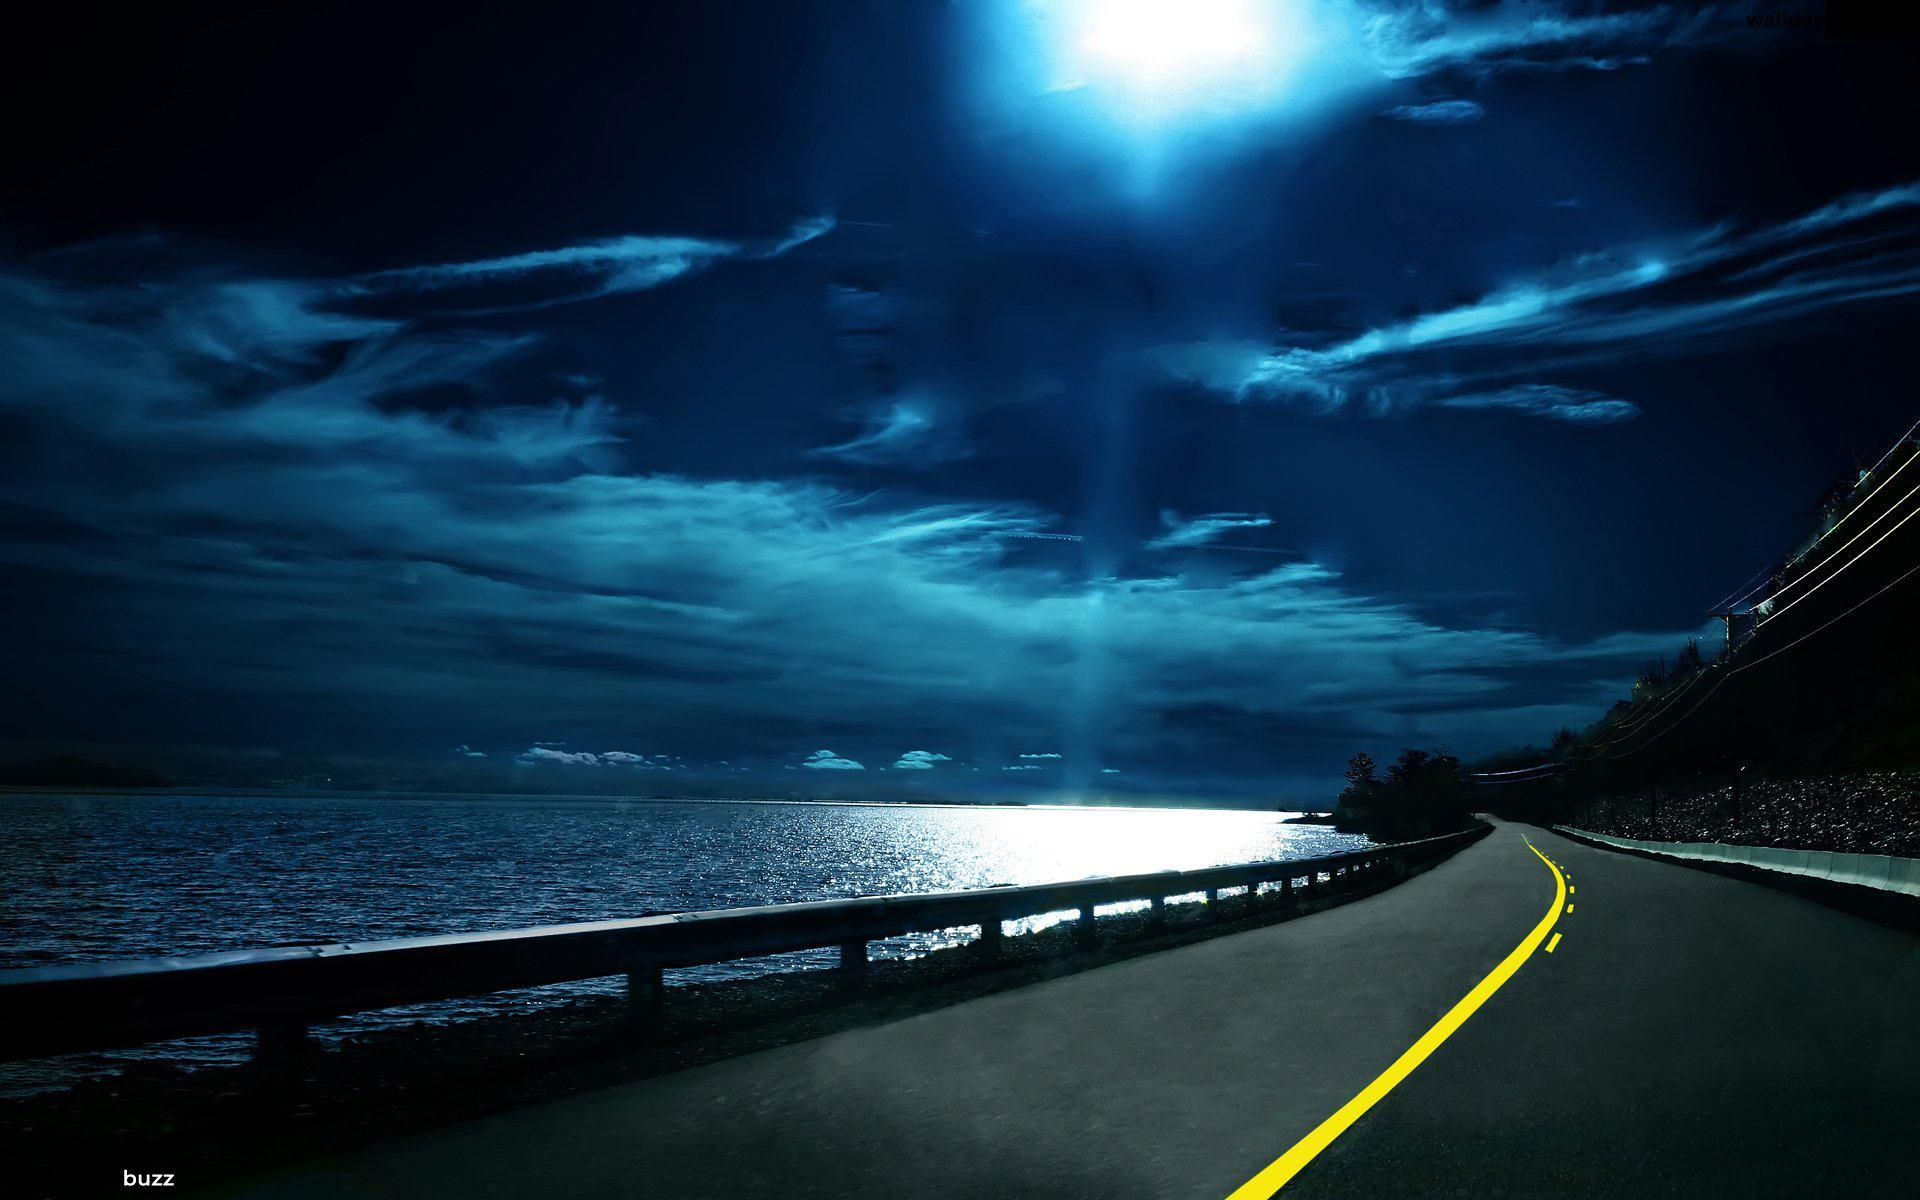 Road Night Pack 3 Wallpaper For Android Apk Download